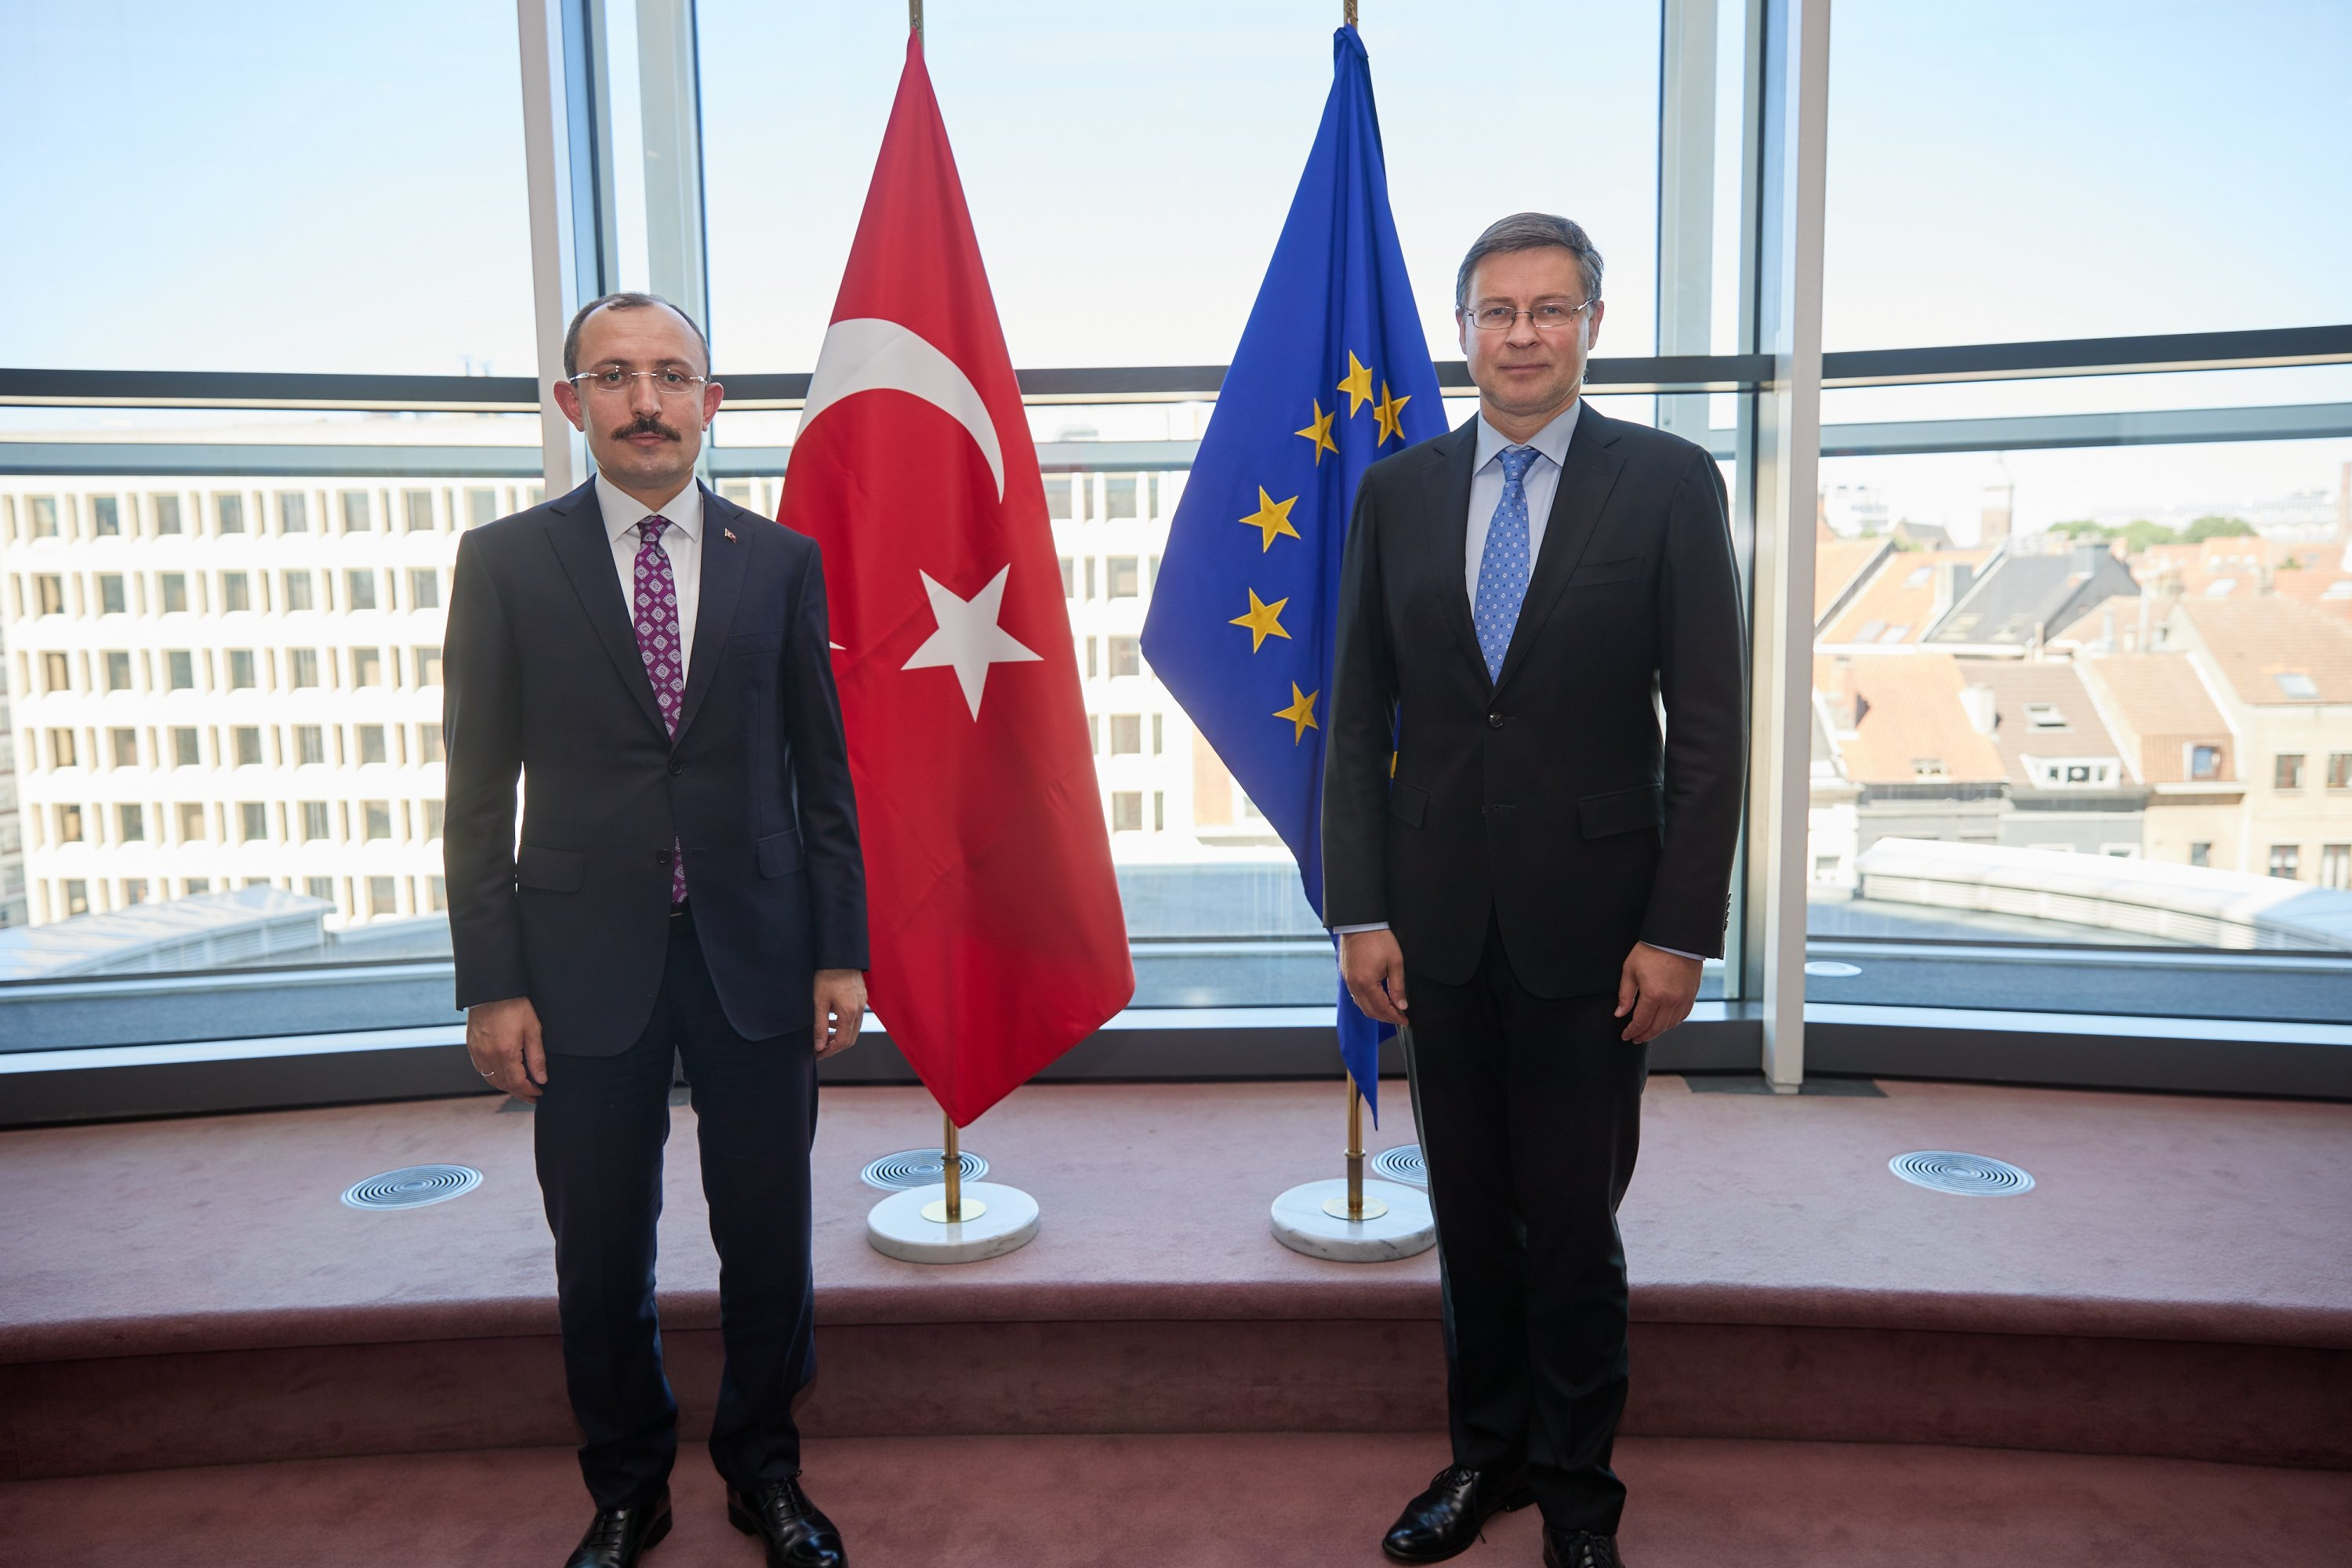 Trade Minister Mehmet Muş (L) meets with the EU's trade commissioner and European Commission vice president, Valdis Dombrovskis, in Brussels, Belgium, June 14, 2021. (European Comission via AA)